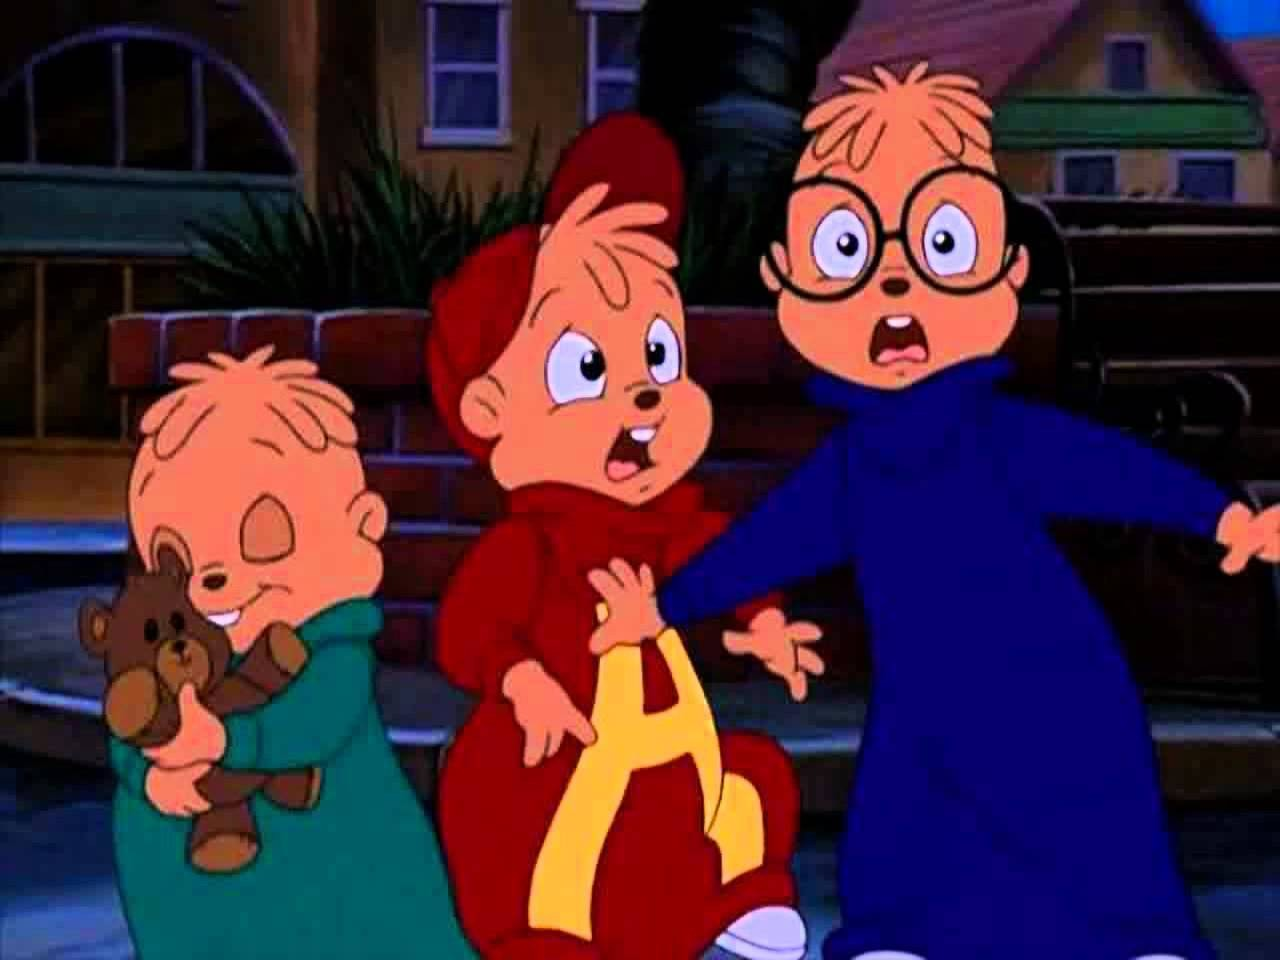 alvin and the chipmunks meet frankenstein things out there